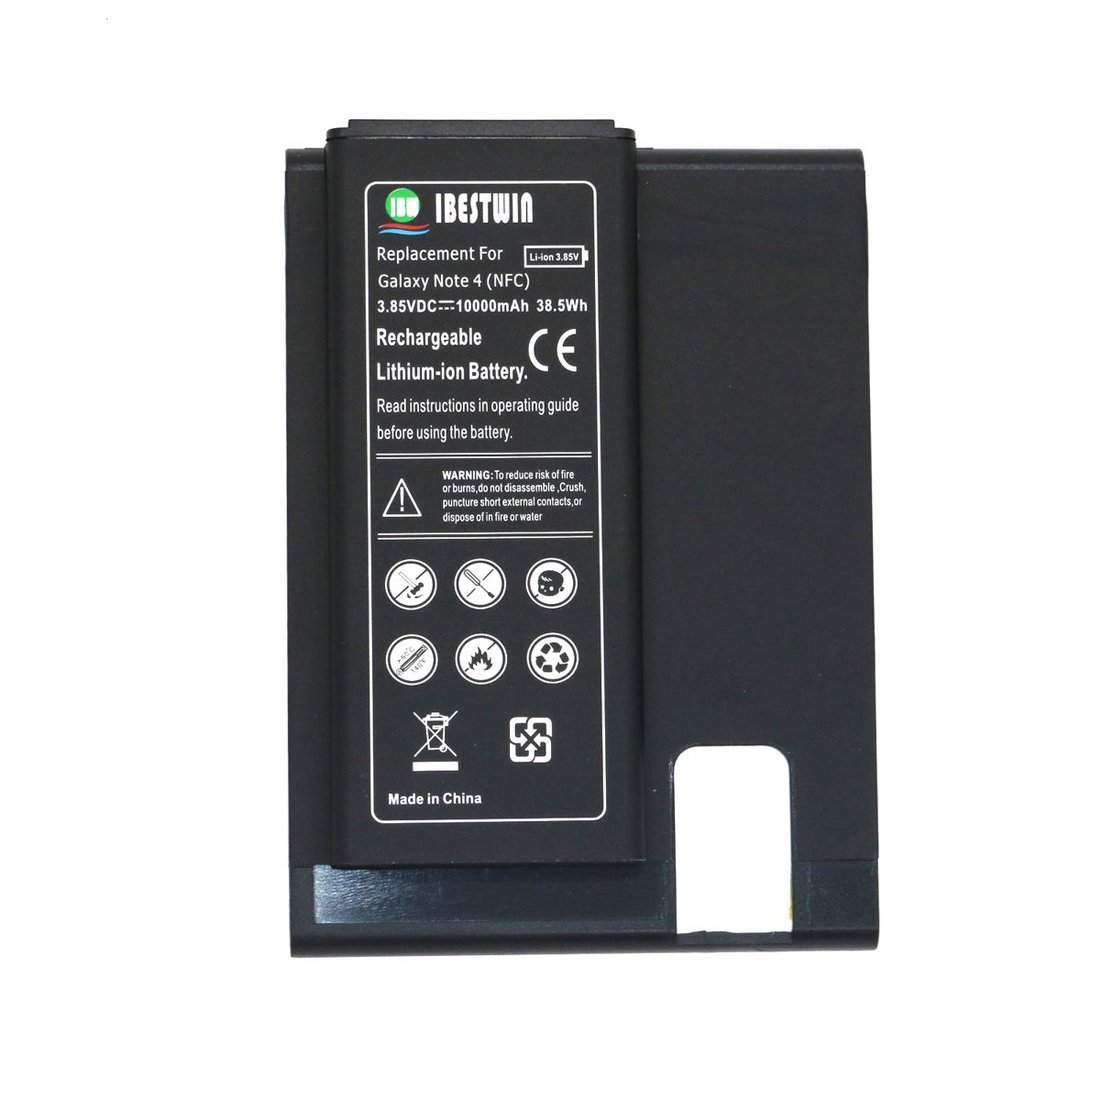 bbf83a884 IBESTWIN Extended Battery For Samsung Galaxy Note 4 with NFC (10000MAH)